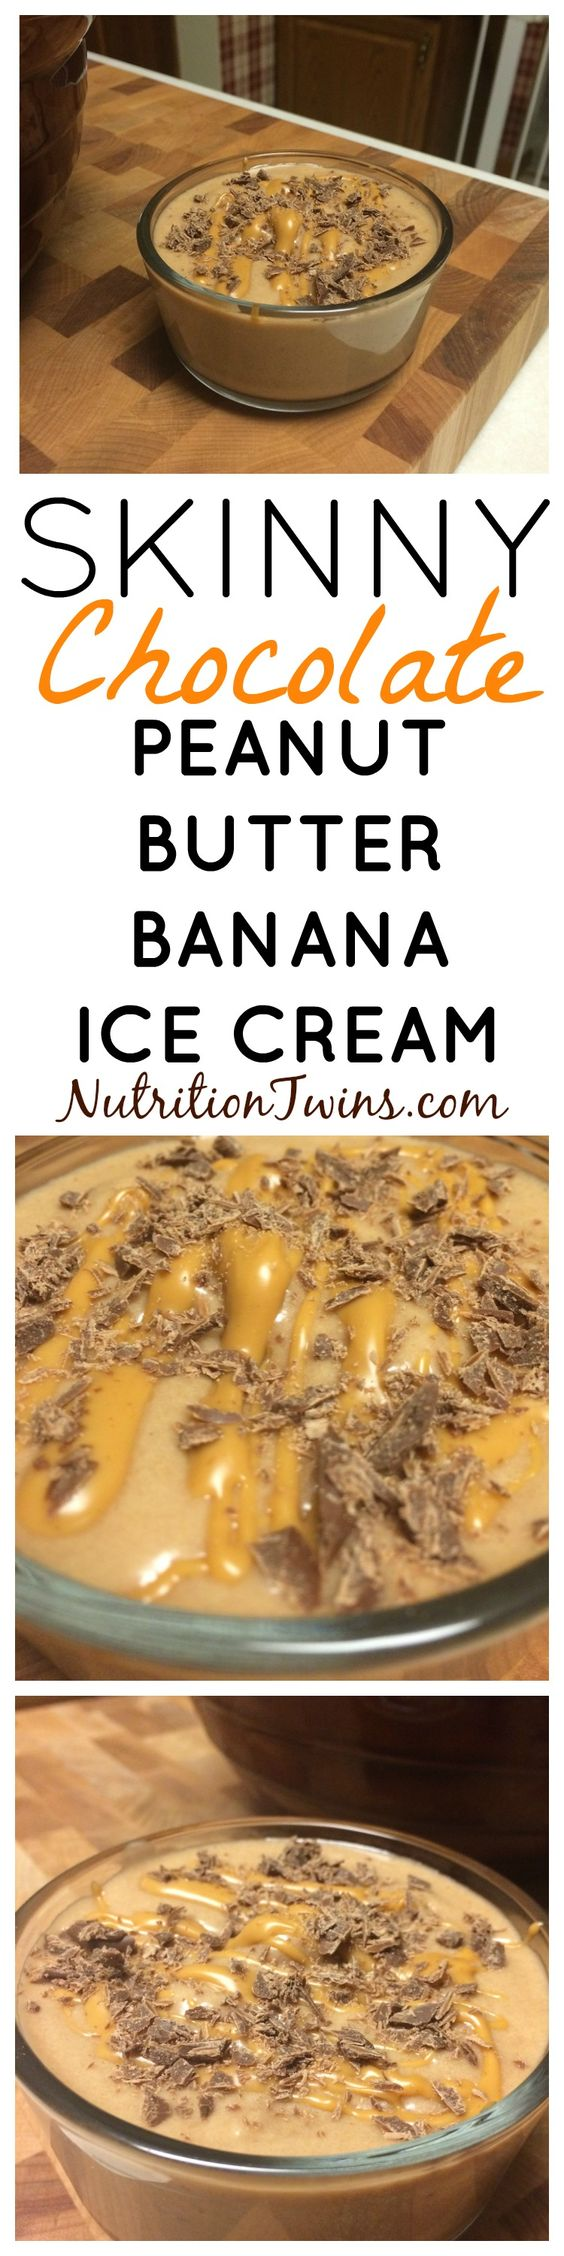 Banana ice cream, Peanut butter banana and Chocolate peanut butter on ...